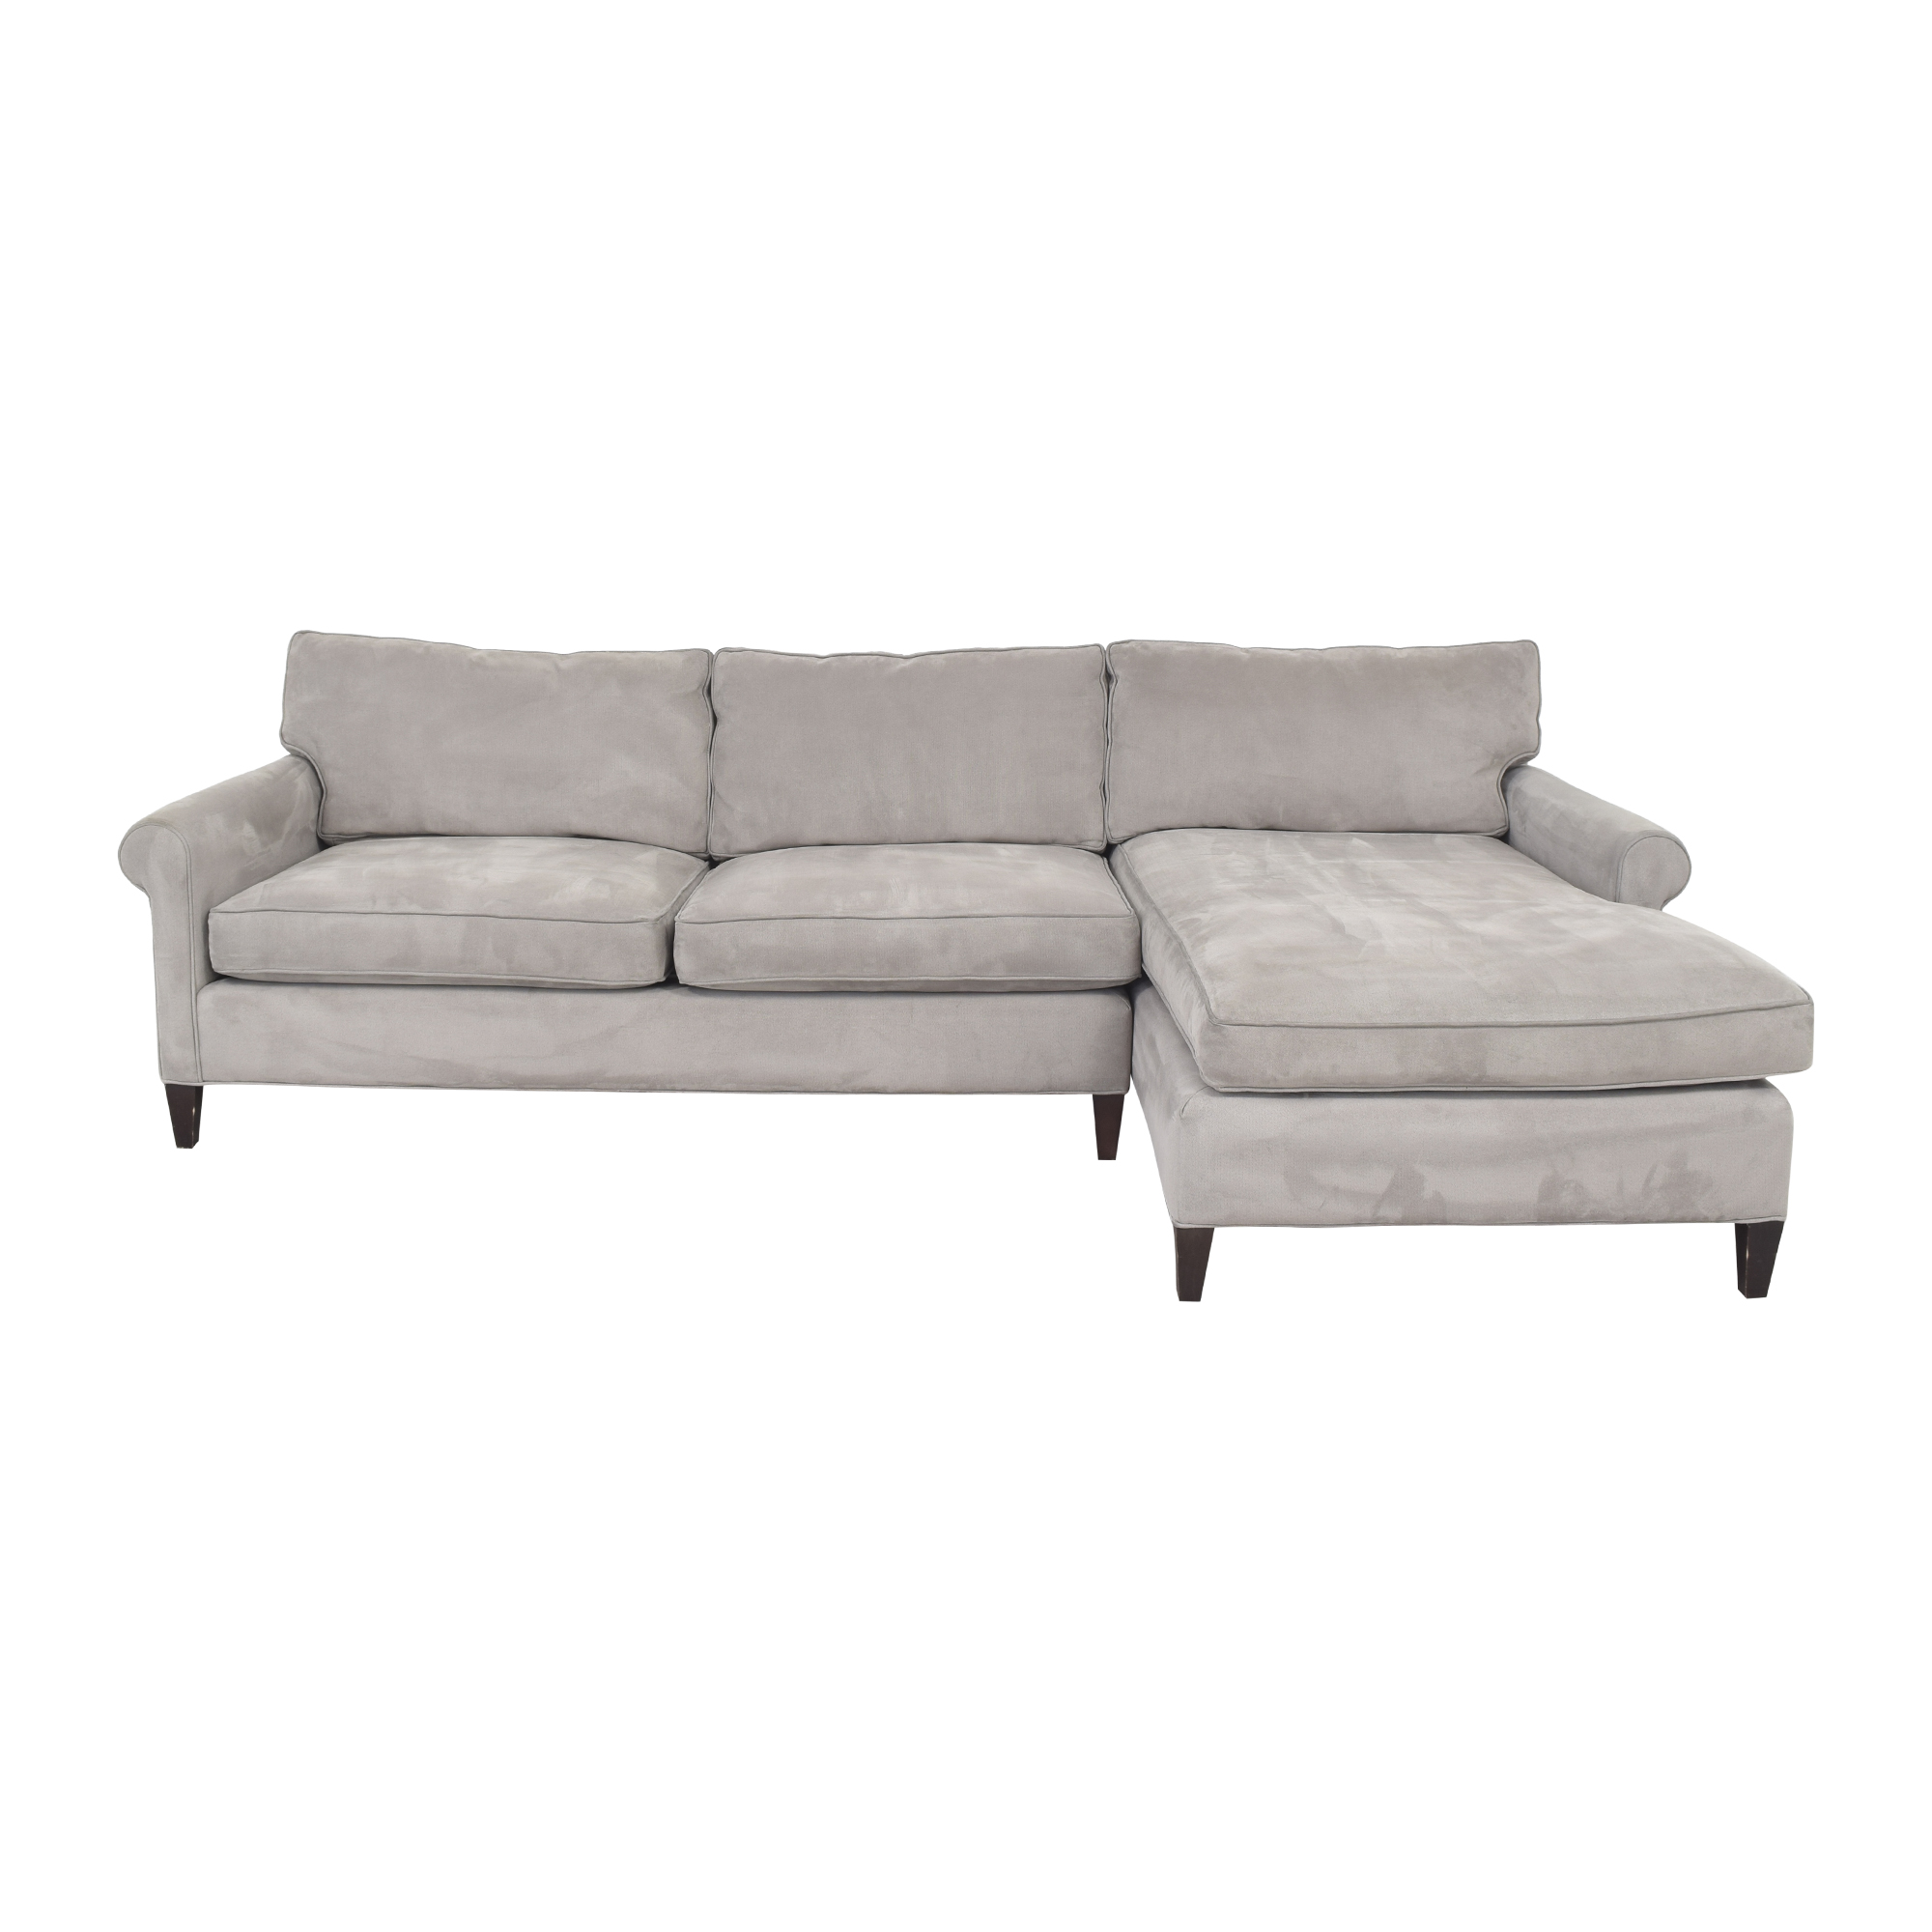 Crate & Barrel Crate & Barrel Montclair Chaise Sectional Sofa Sofas